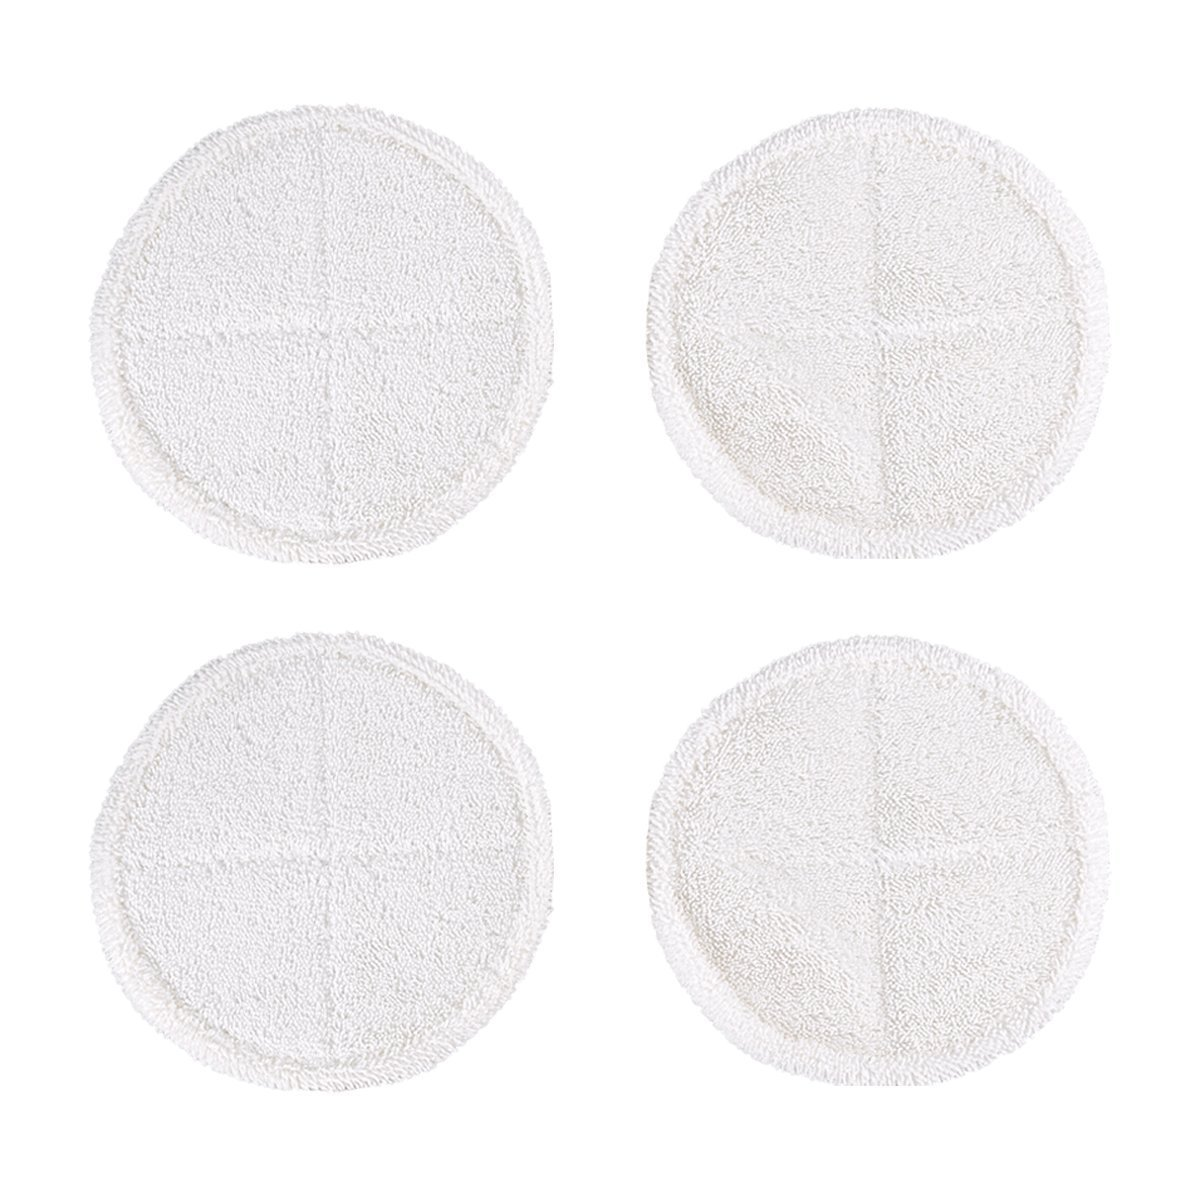 ECOMAID 4 Pcs Soft Touch Mop Pads Replacement for Bissell Spinwave 2039A 2124 Powered Hard Floor Mop